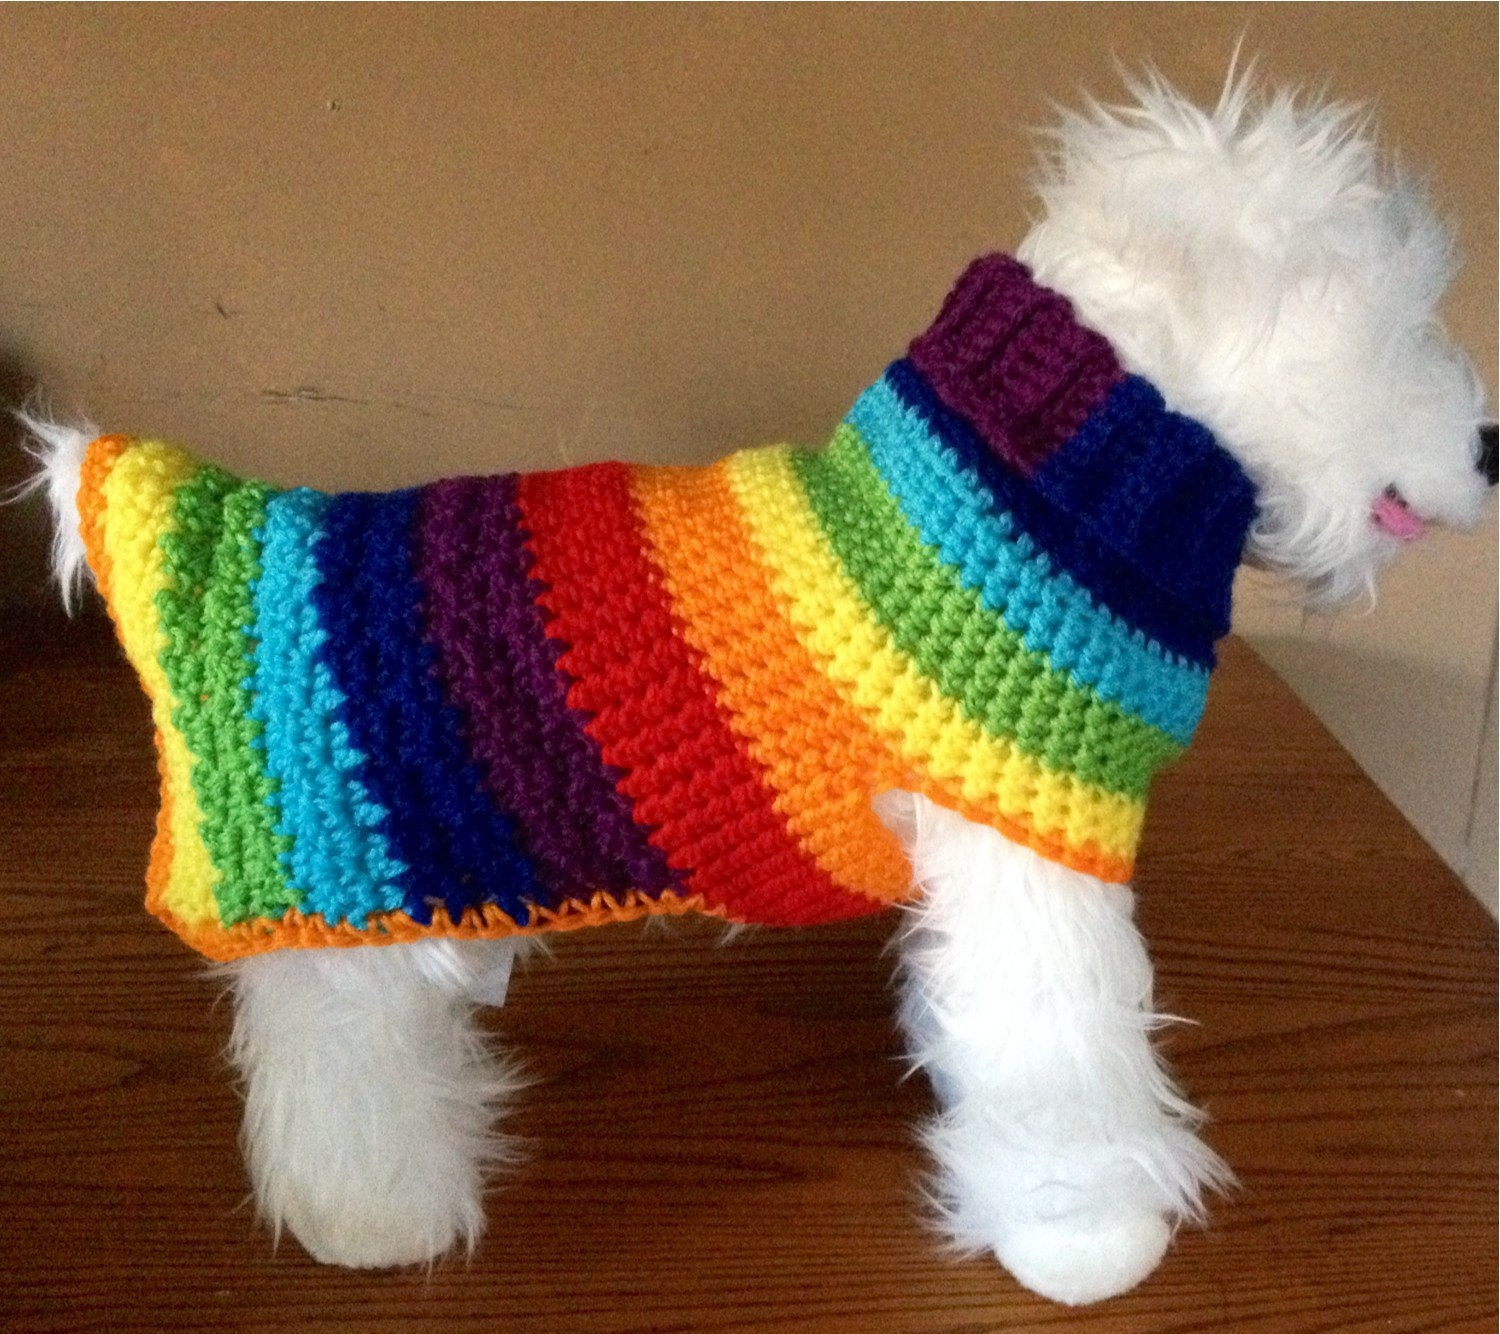 Kiwi's Kozy Crochet Dog Sweater PATTERN by hmcquigg on Etsy patterns is for sale shouldn't be too hard to replicate Find this Pin and more on Dogs/My girls, Bella & Marley by Lori Bishop. For sale is a crochet PATTERN for the Kiwis Kozy dog sweater pictured.